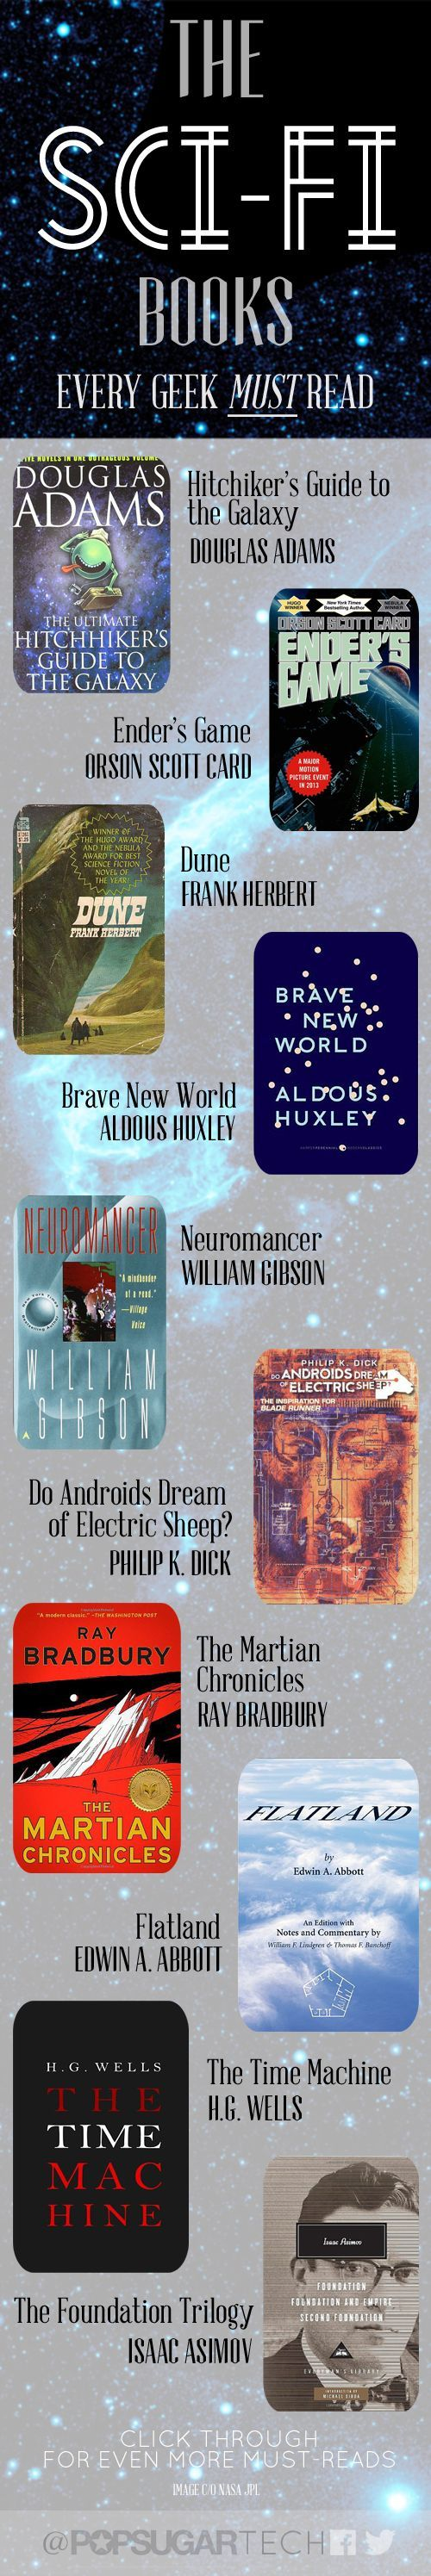 Space, dystopian futures, robots, technology, aliens . . . what is there not to love about science fiction